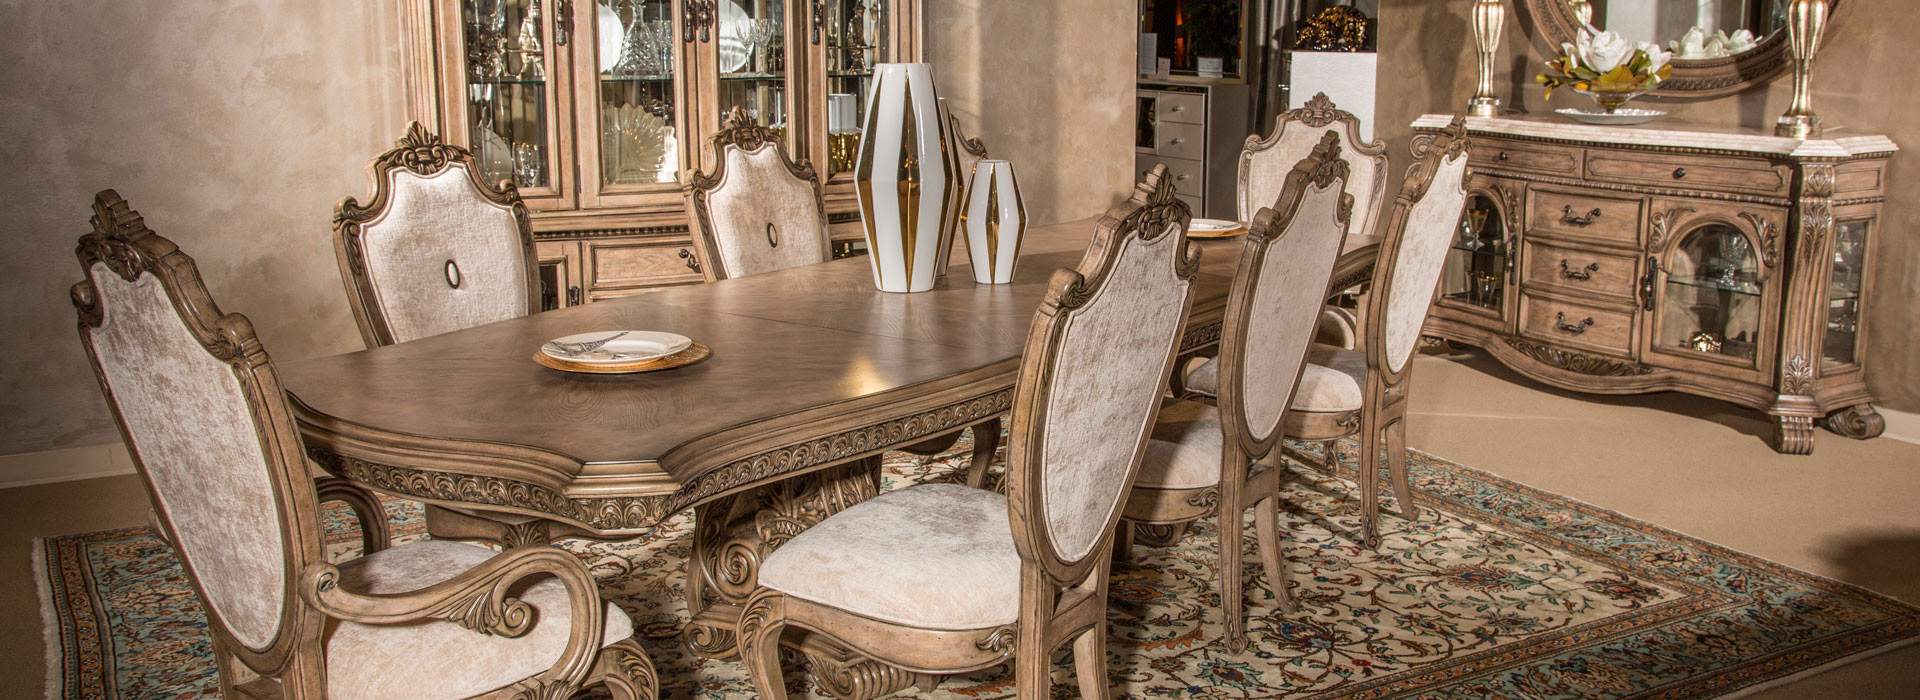 Villa Di Como Presents Classic Renaissance Revival Architectural Elements  With Palladian Arched Window Design On The Headboard And The Decorative  Fluted ...